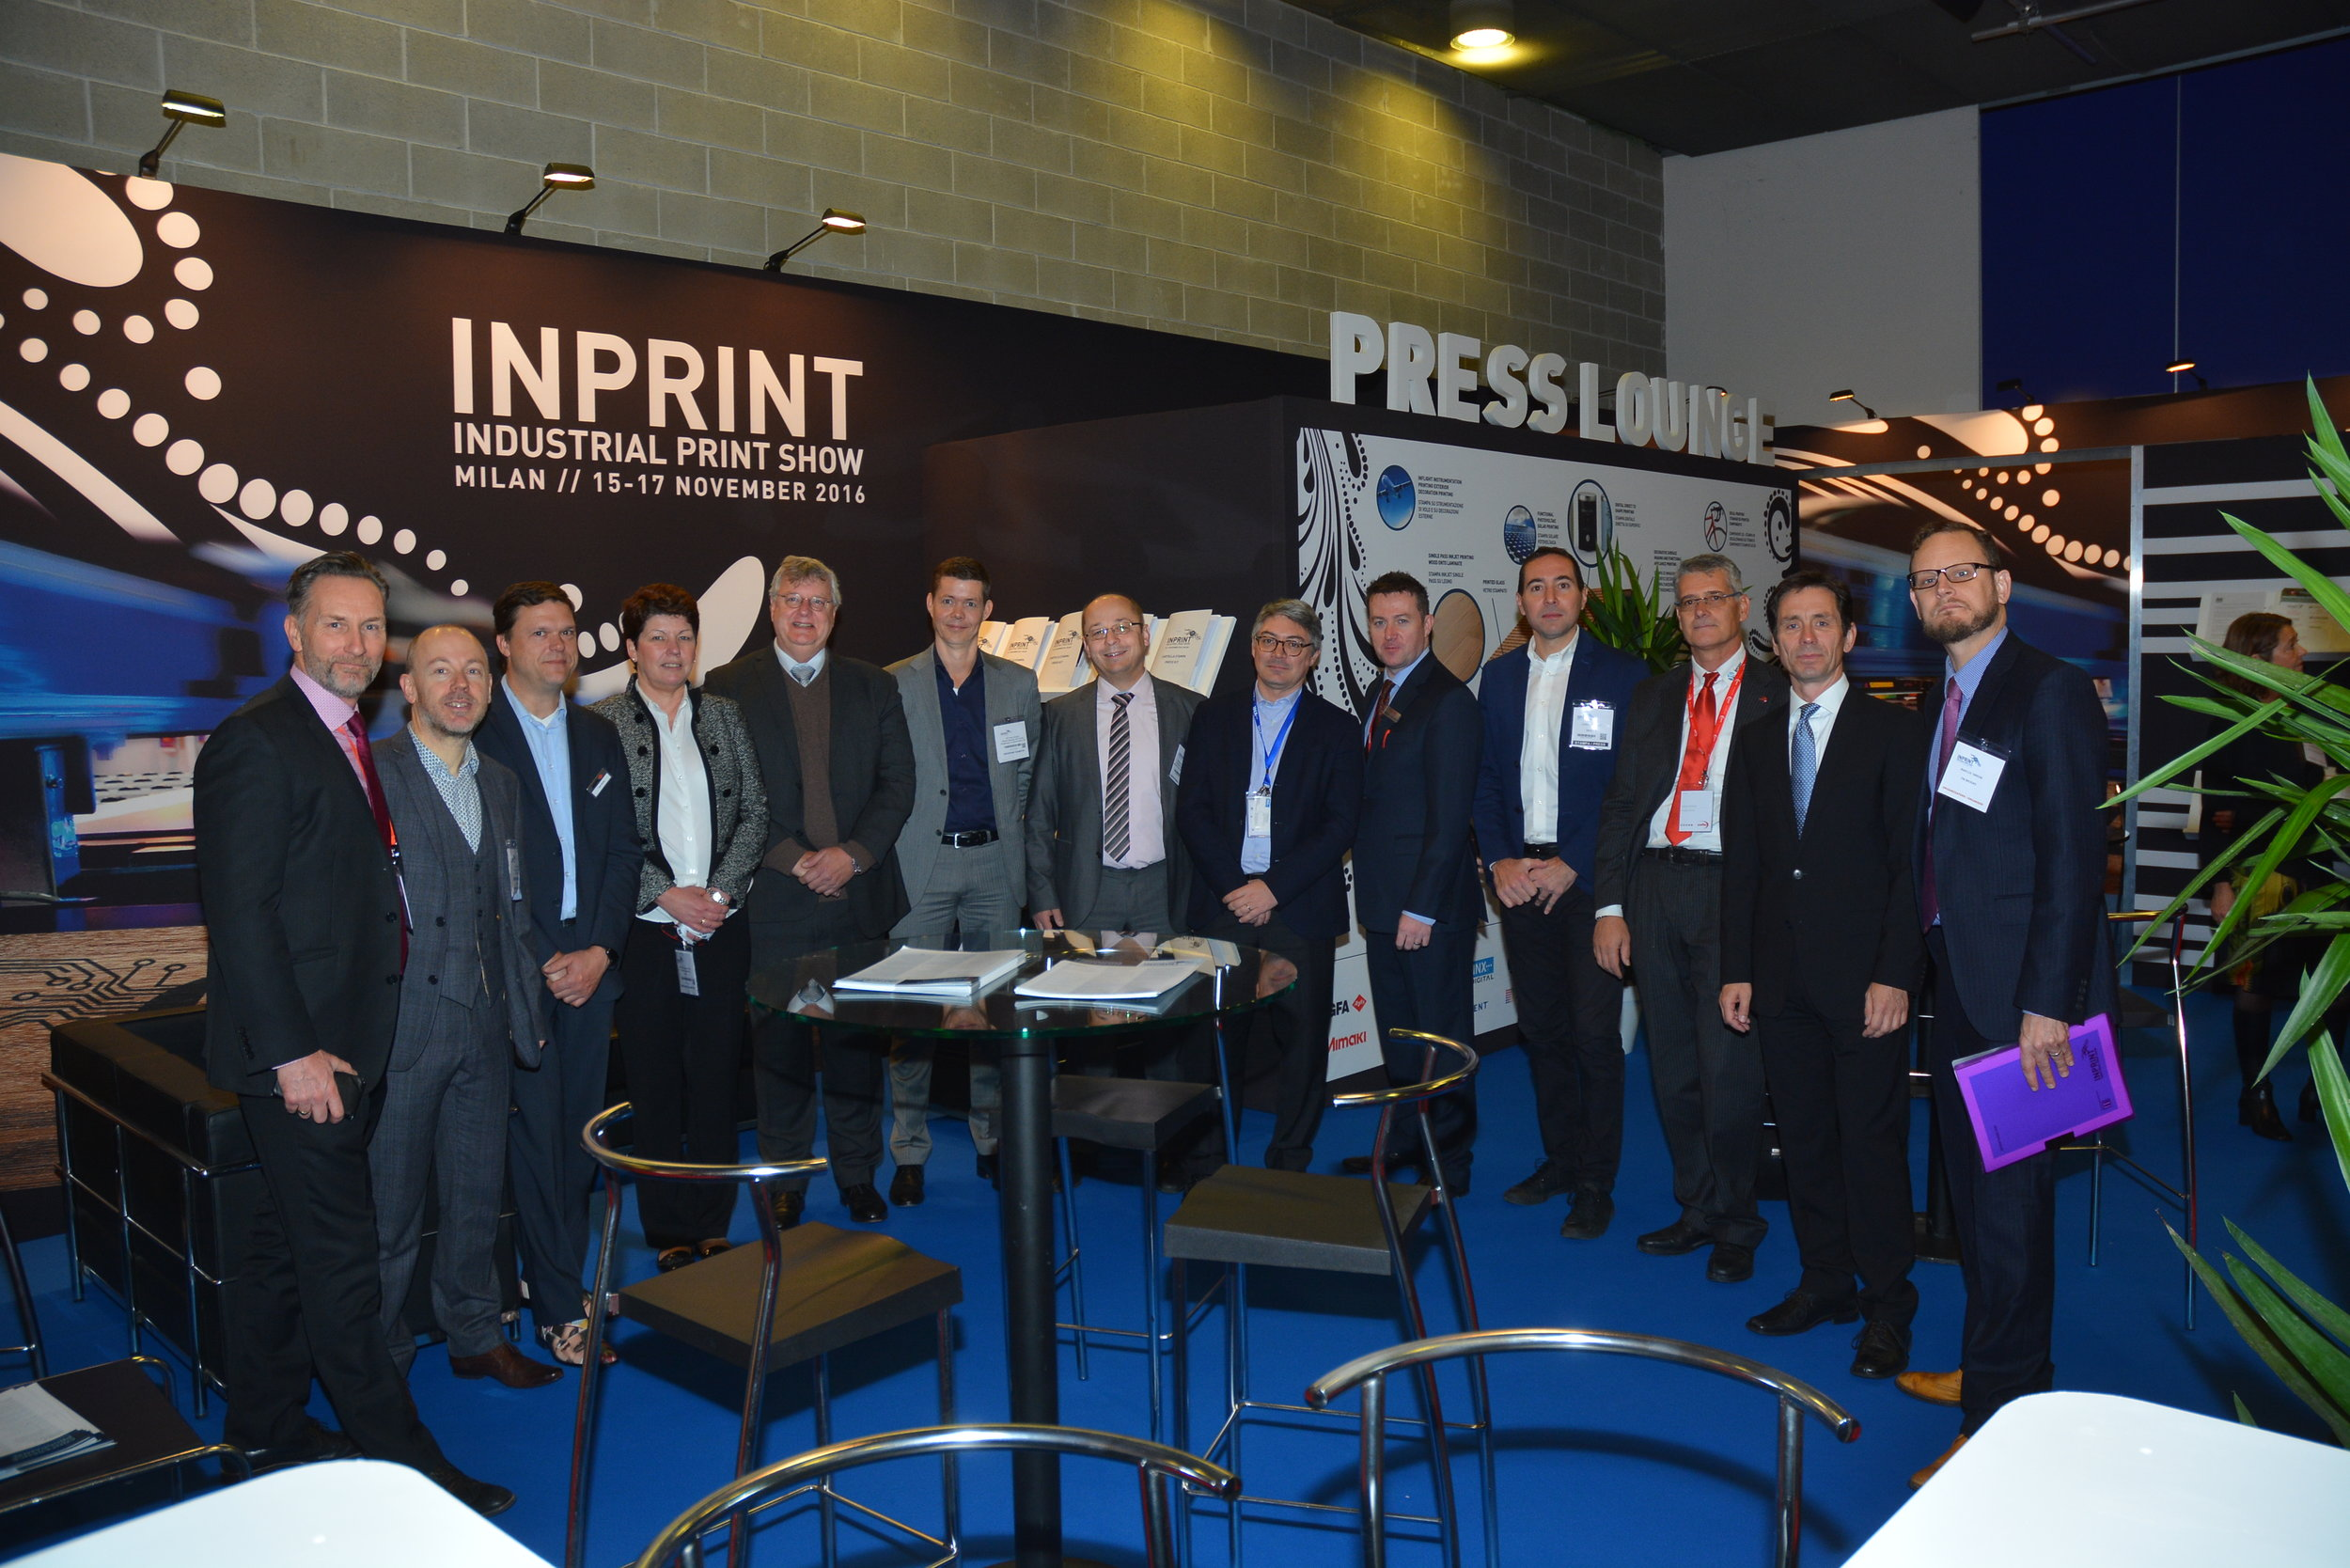 Press lounge and Conference backdrop produced by Insite